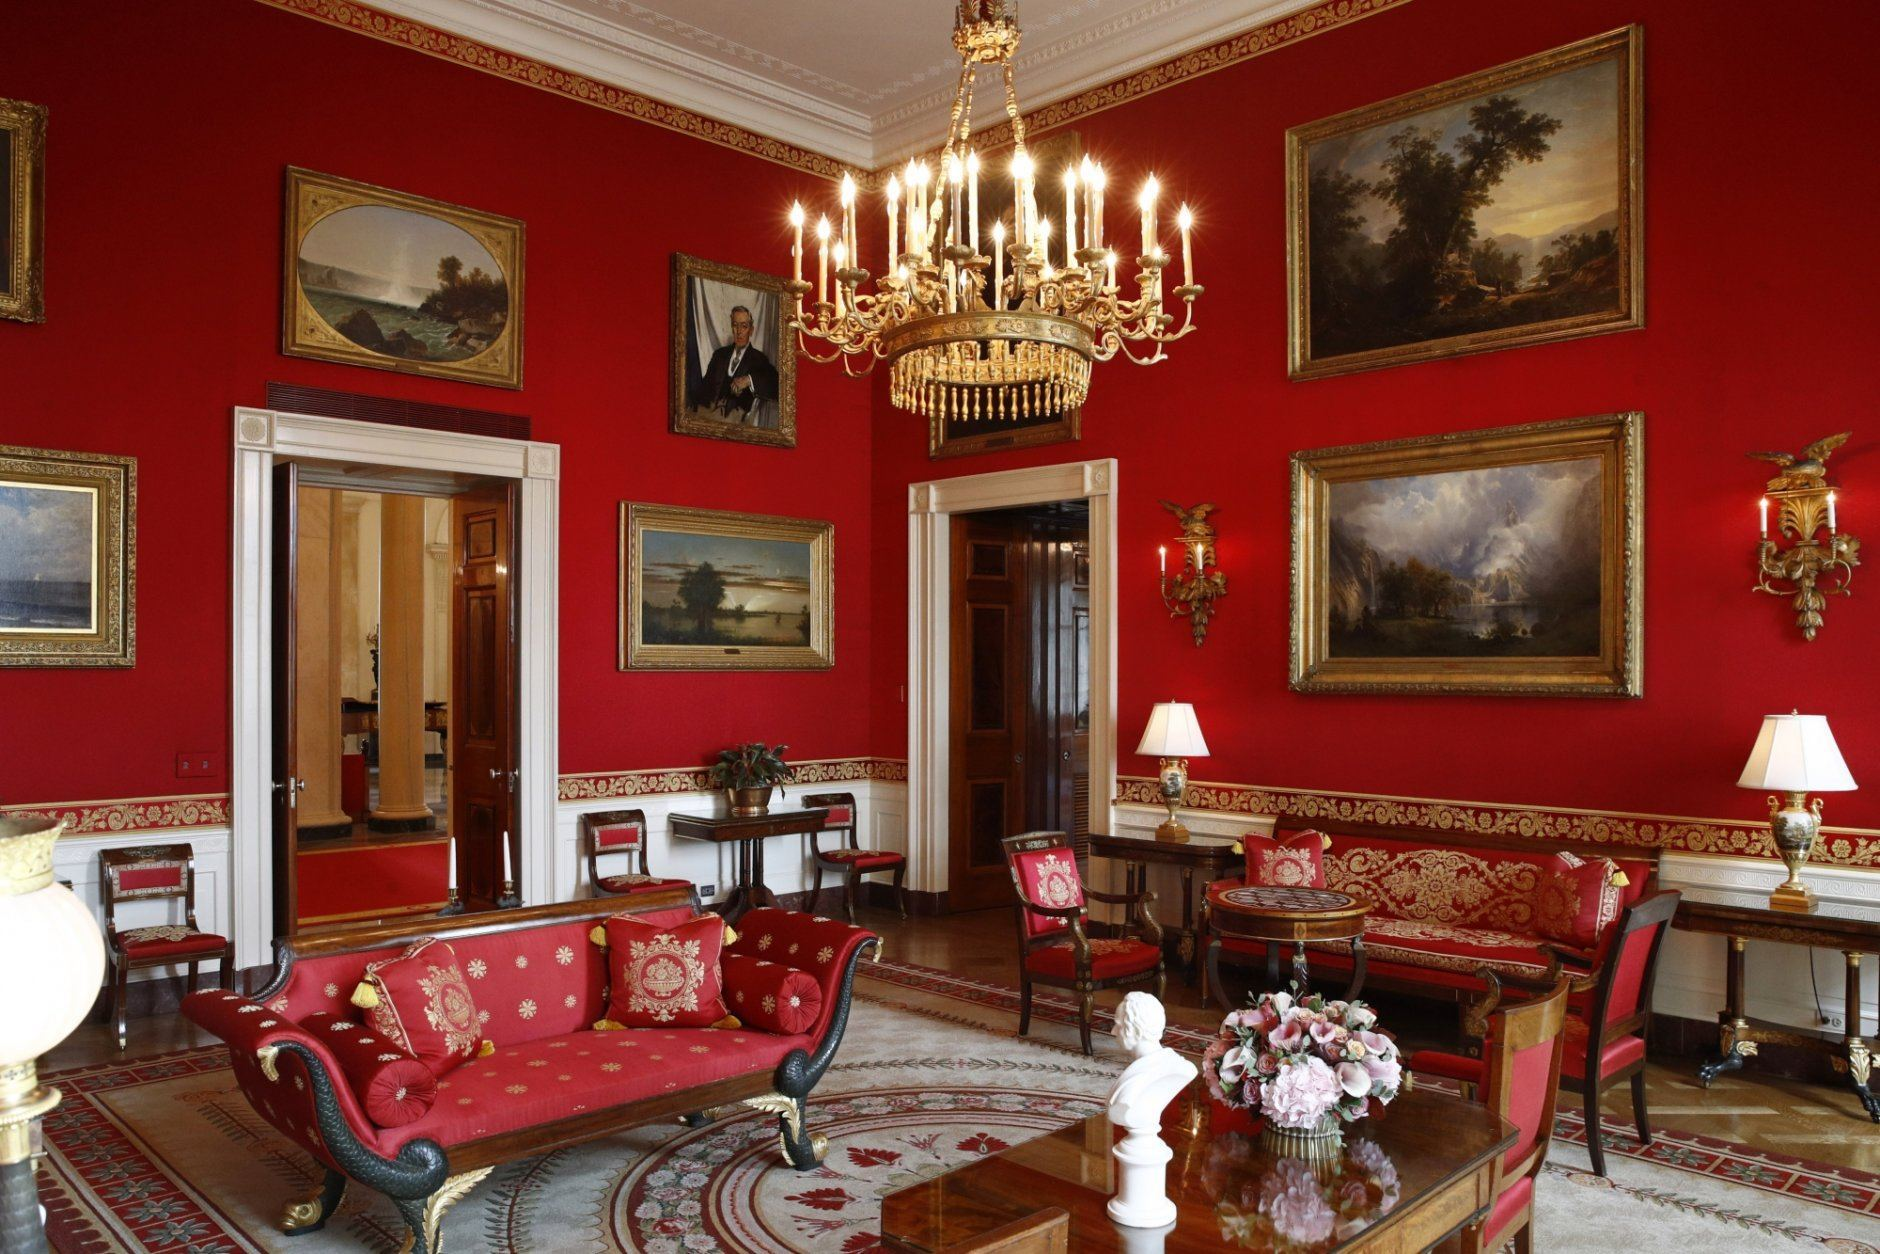 """This Sept. 17, 2019, photo shows refreshed wall fabric in the Red Room of the White House in Washington. Sunlight streaming into the Red Room had left wall fabric """"so faded it was almost pink,"""" said Stewart McLaurin, president of the White House Historical Association. (AP Photo/Patrick Semansky)"""